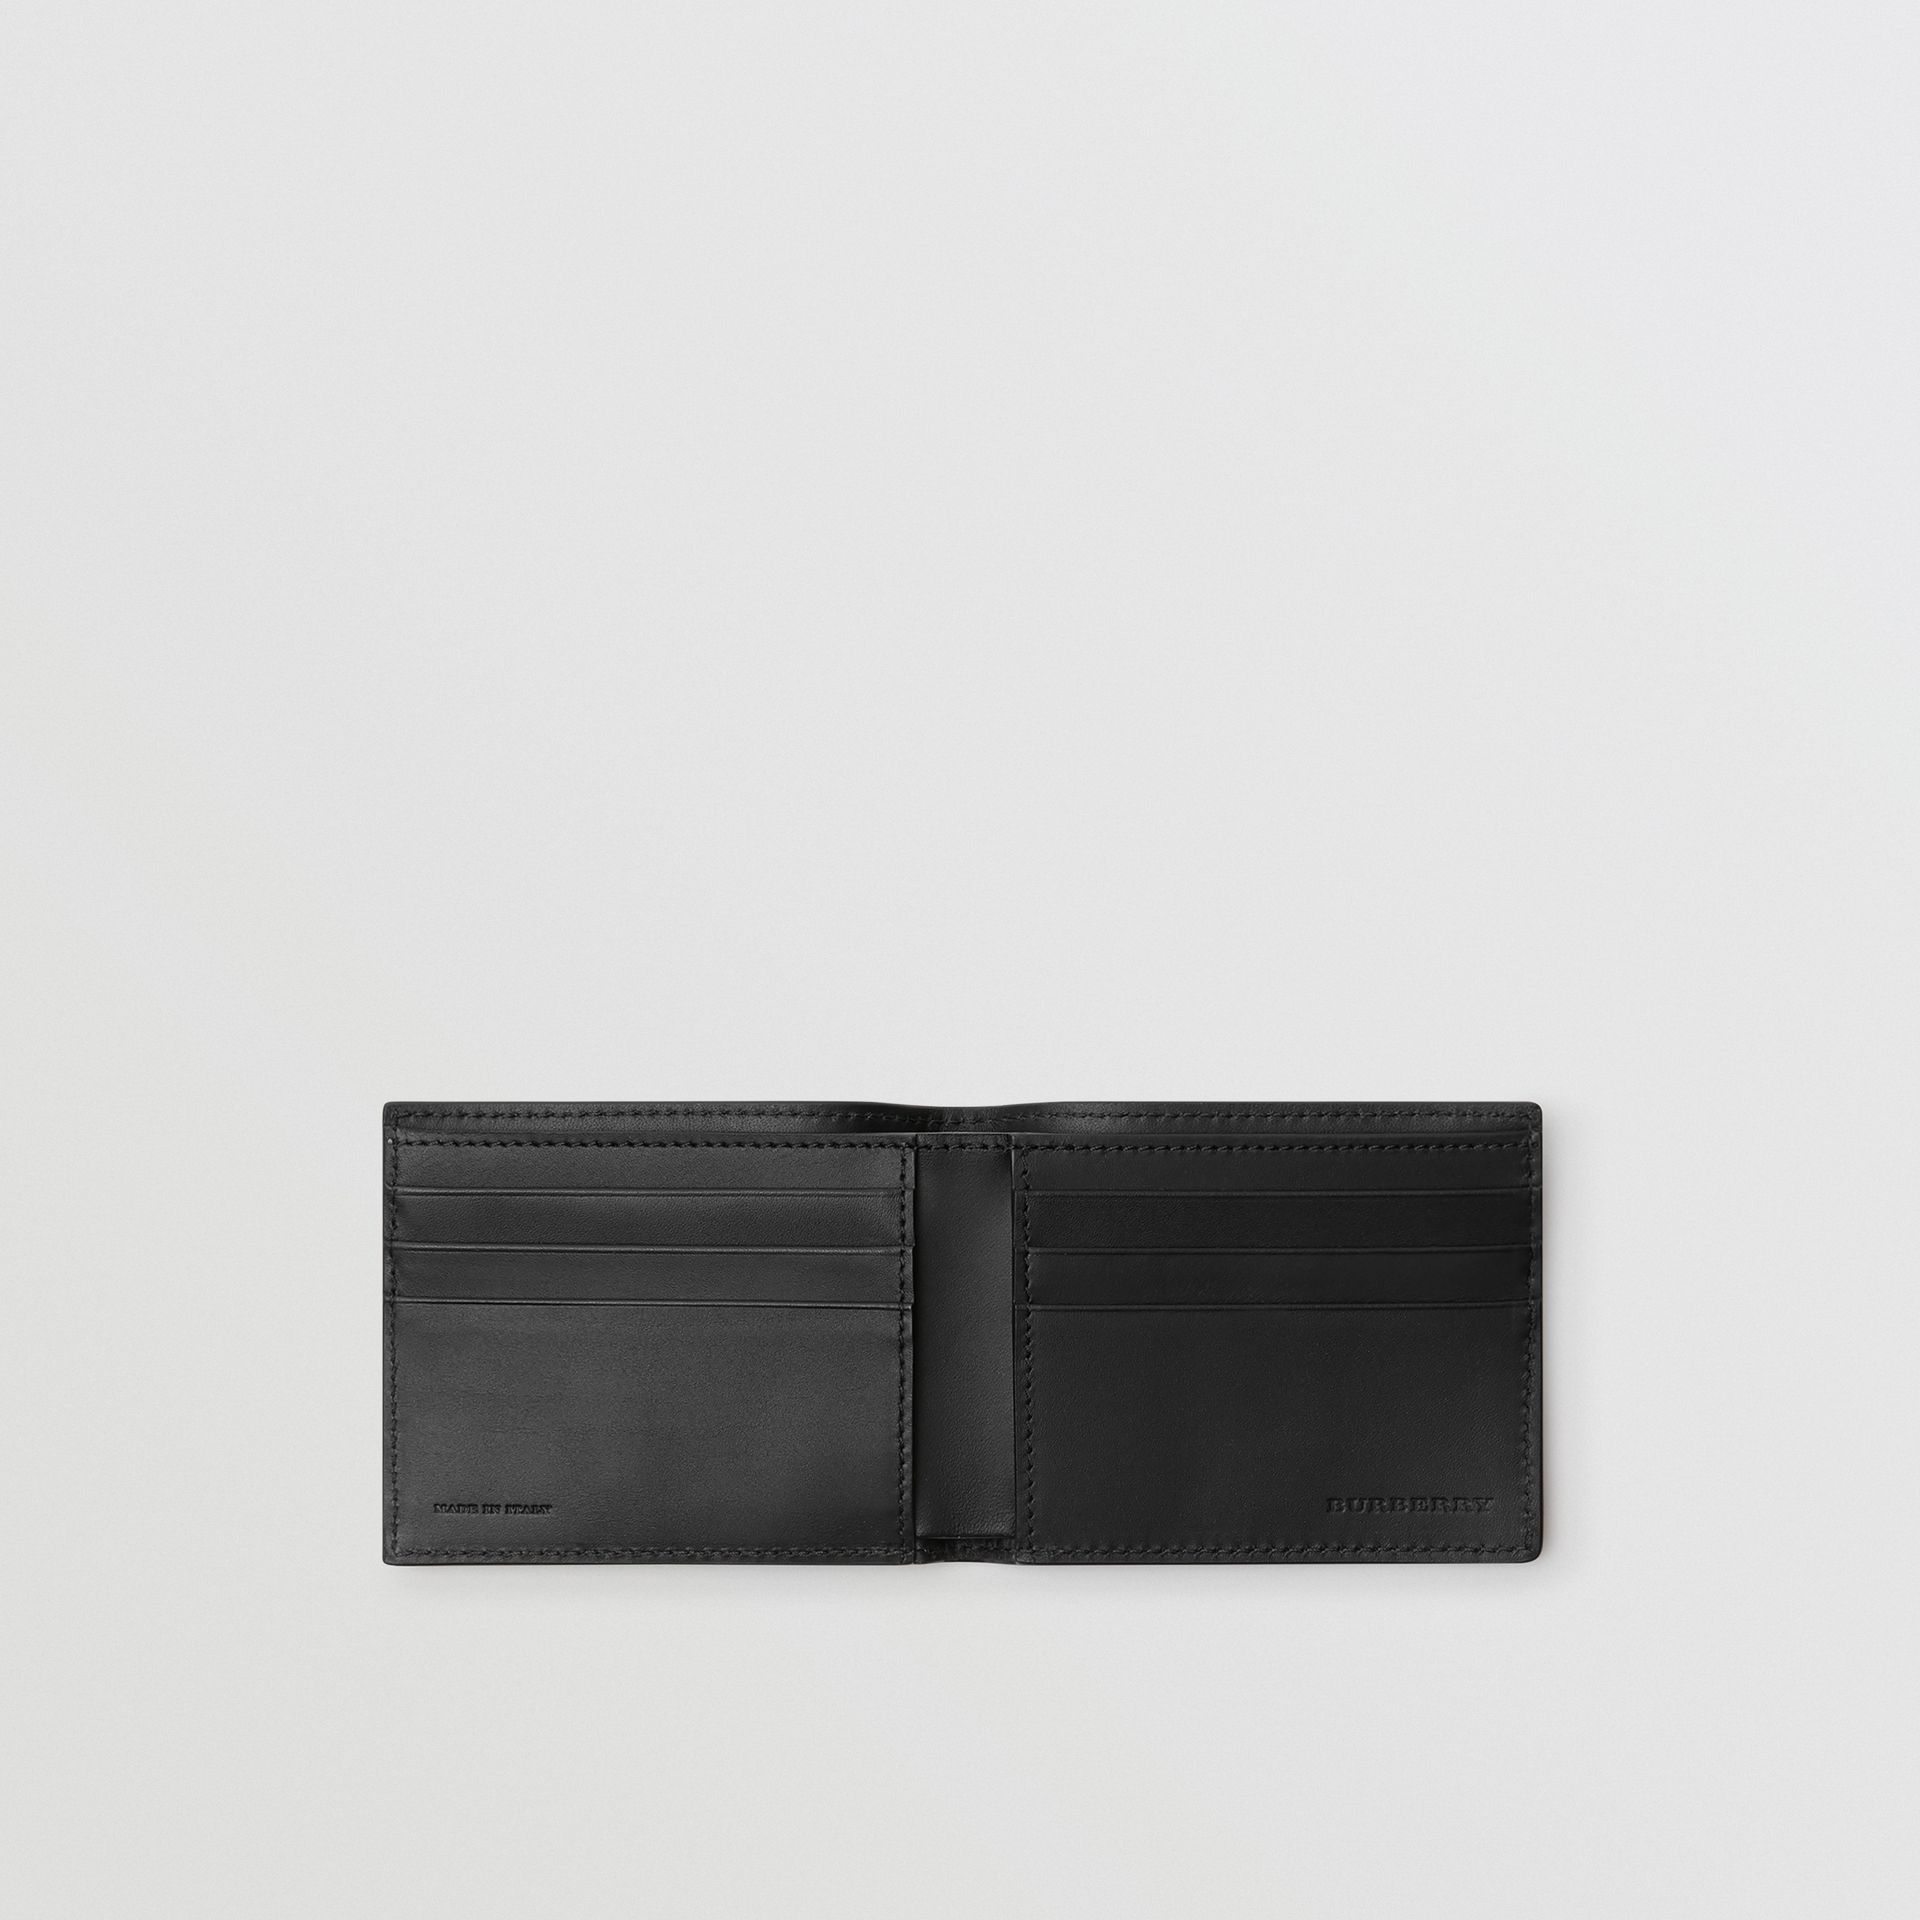 Grainy Leather Bifold Wallet in Black - Men | Burberry Hong Kong - gallery image 3